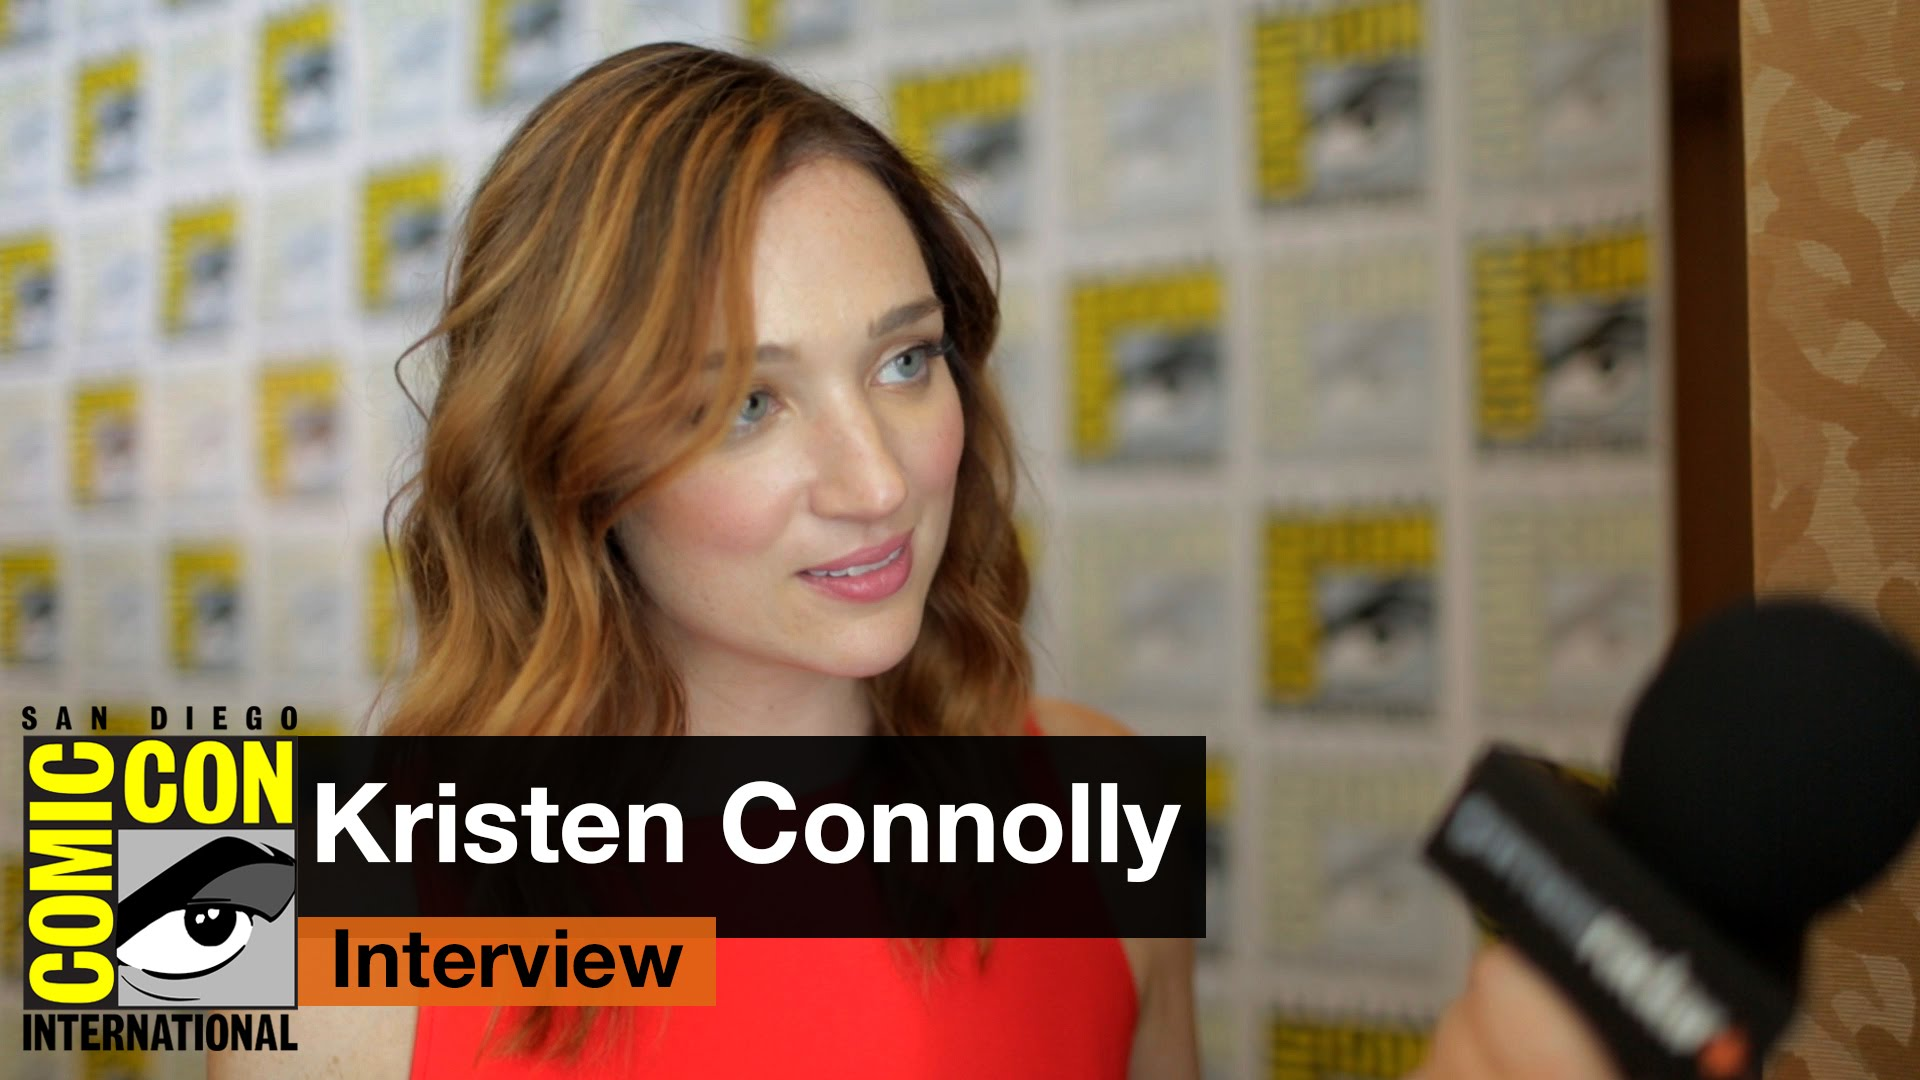 1920x1080 - Kristen Connolly Wallpapers 27